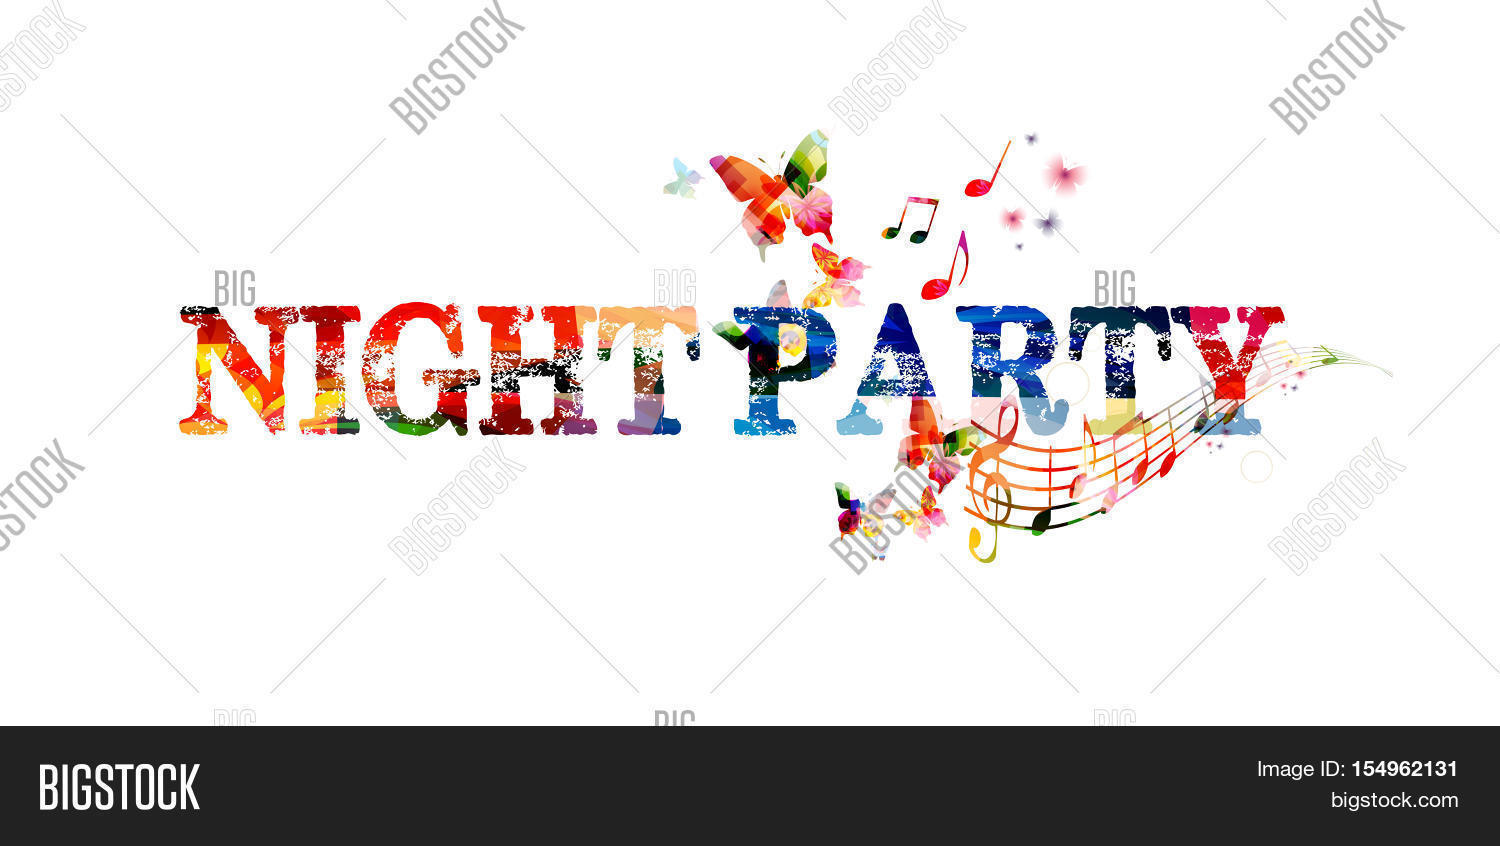 Poster design notes - Colorful Typographic Party Background Party Poster Design Night Party Inscription With Music Notes